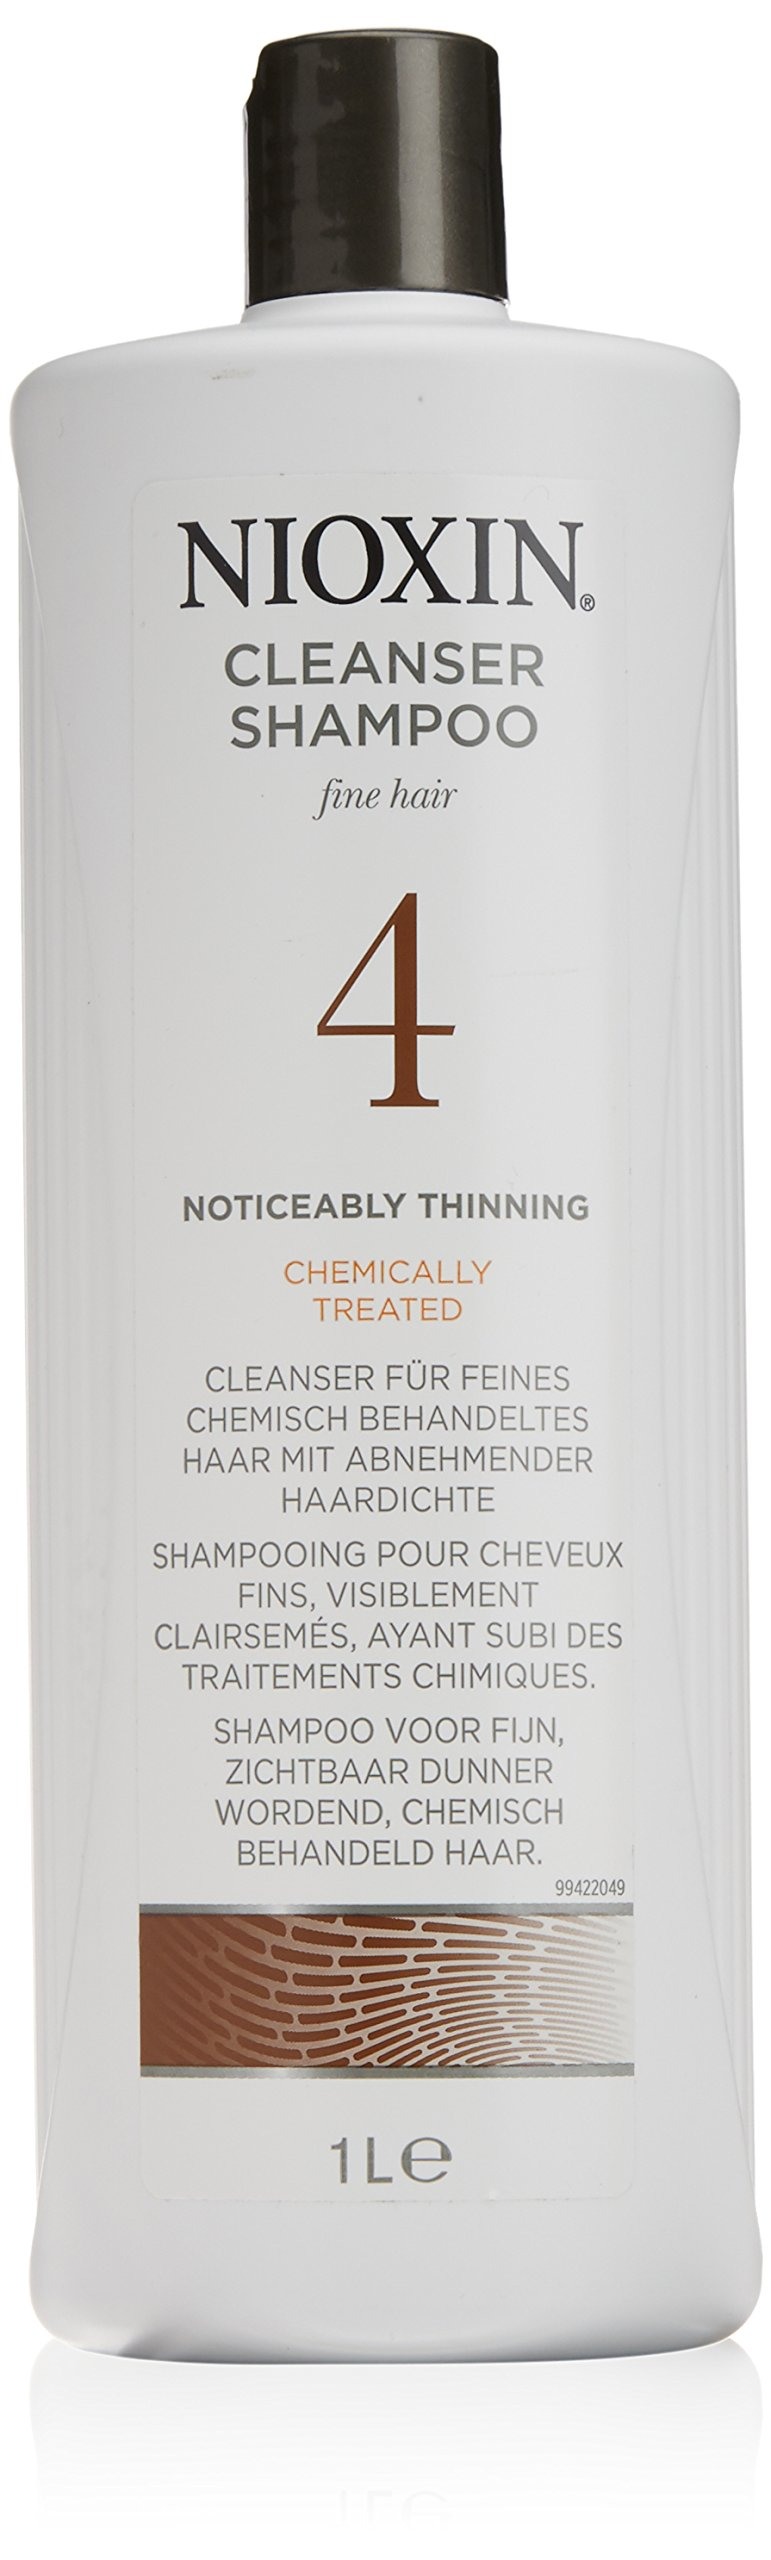 Nioxin Cleanser System 4 1 Litre product image